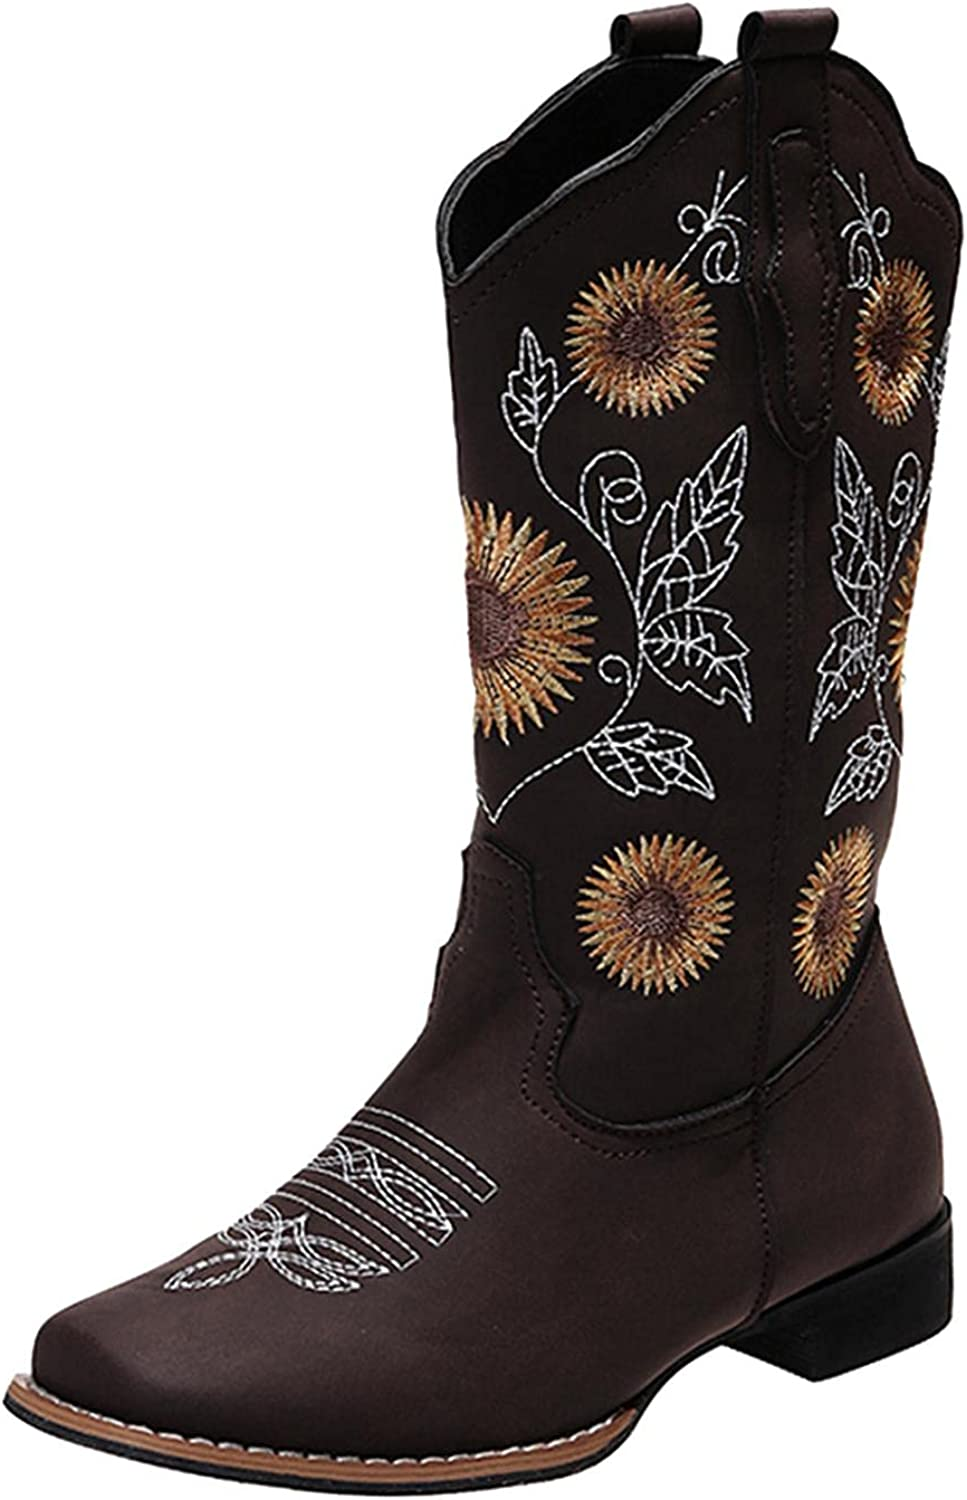 Masbird Cowboy Boots for Womens Low Heel Western Boot Embroidery Zip Pointed Toe Chunky Stacked Mid Calf Booties